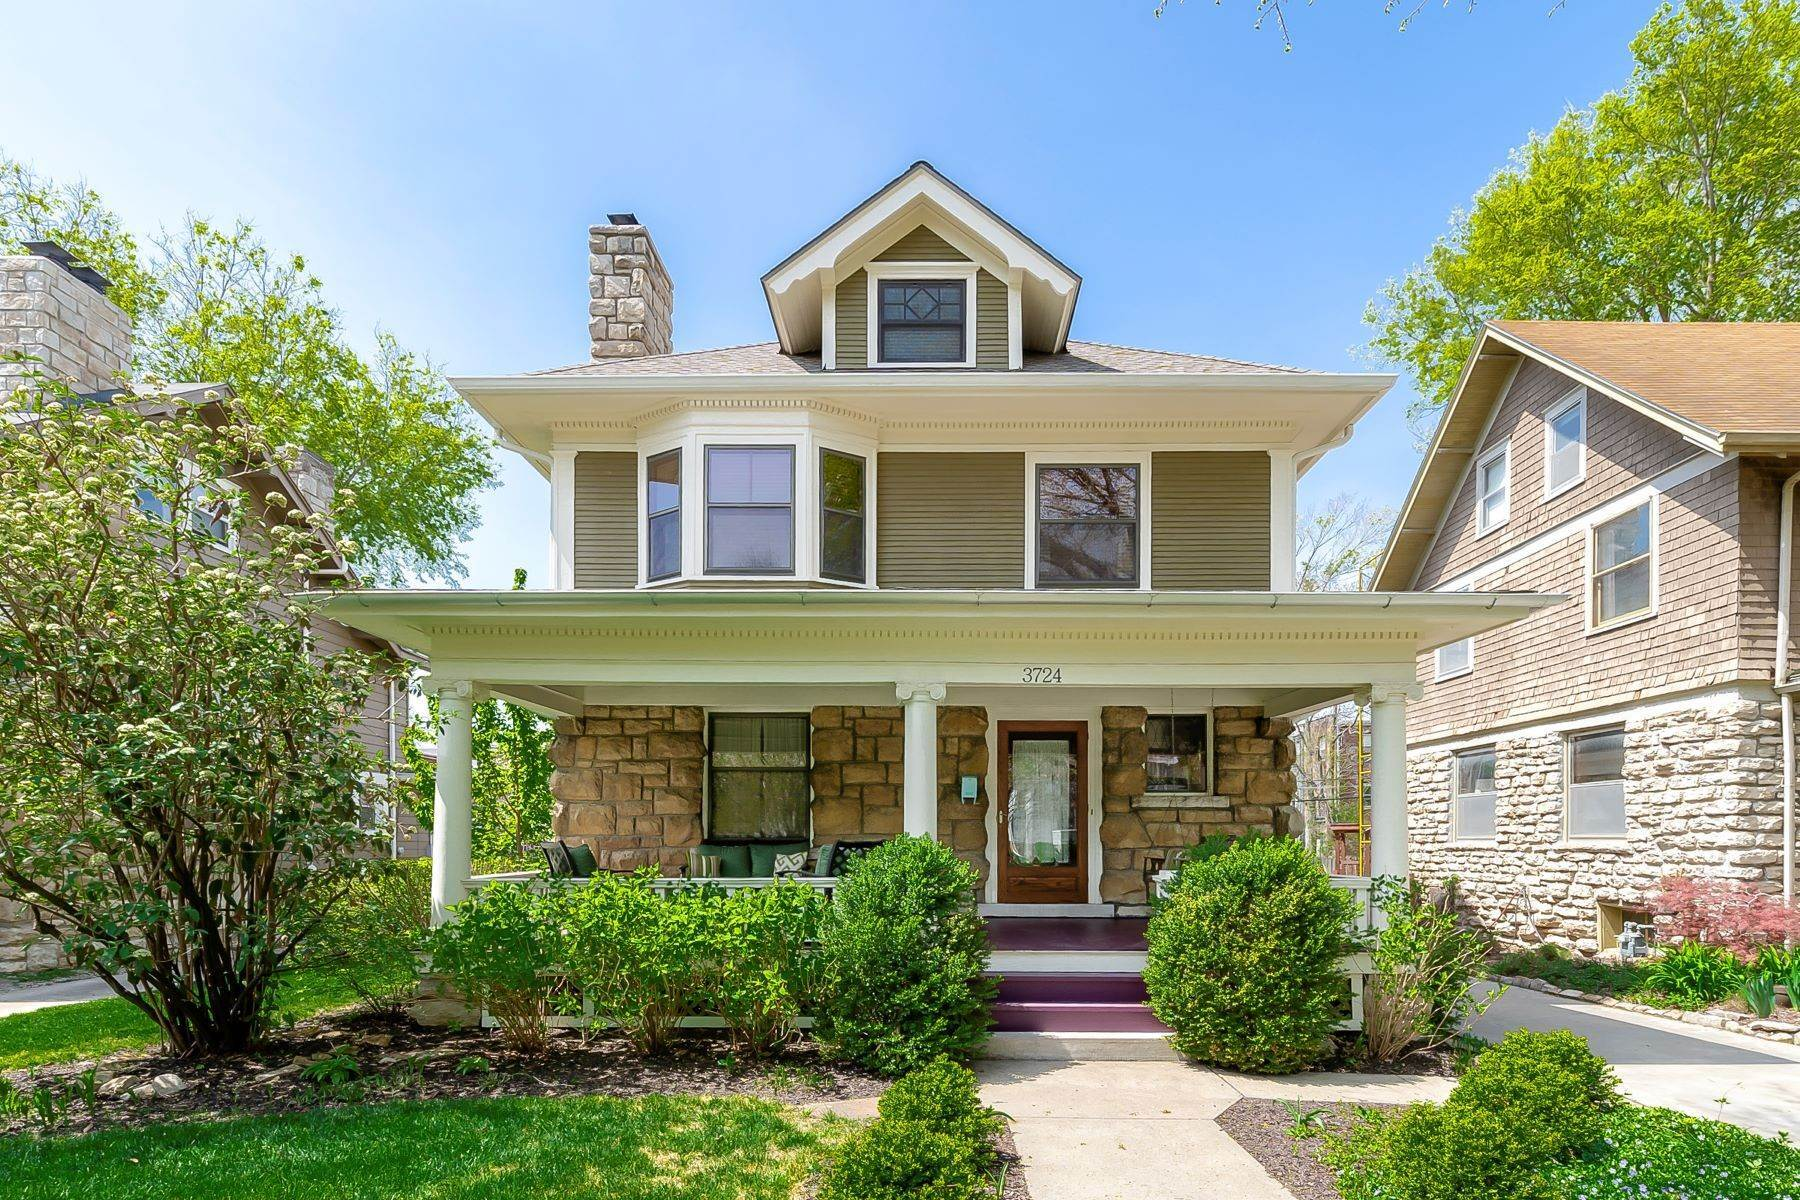 Single Family Homes for Sale at Gorgeous Roanoke Home 3724 Jefferson Street Kansas City, Missouri 64111 United States